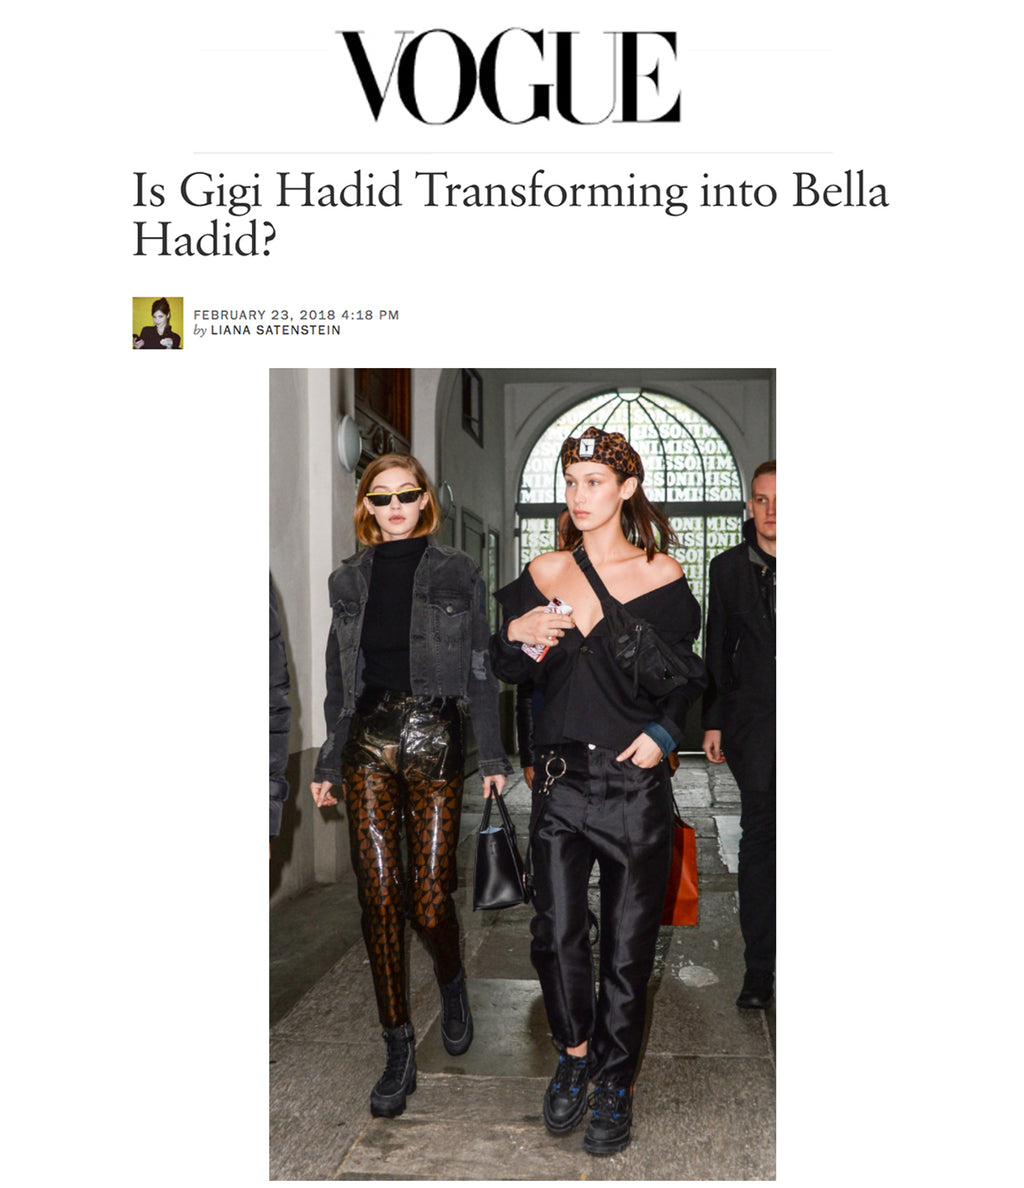 FEB 23, 2018 | Gigi Hadid in iRi Black Nubuck Boot in Paris as seen on Vogue